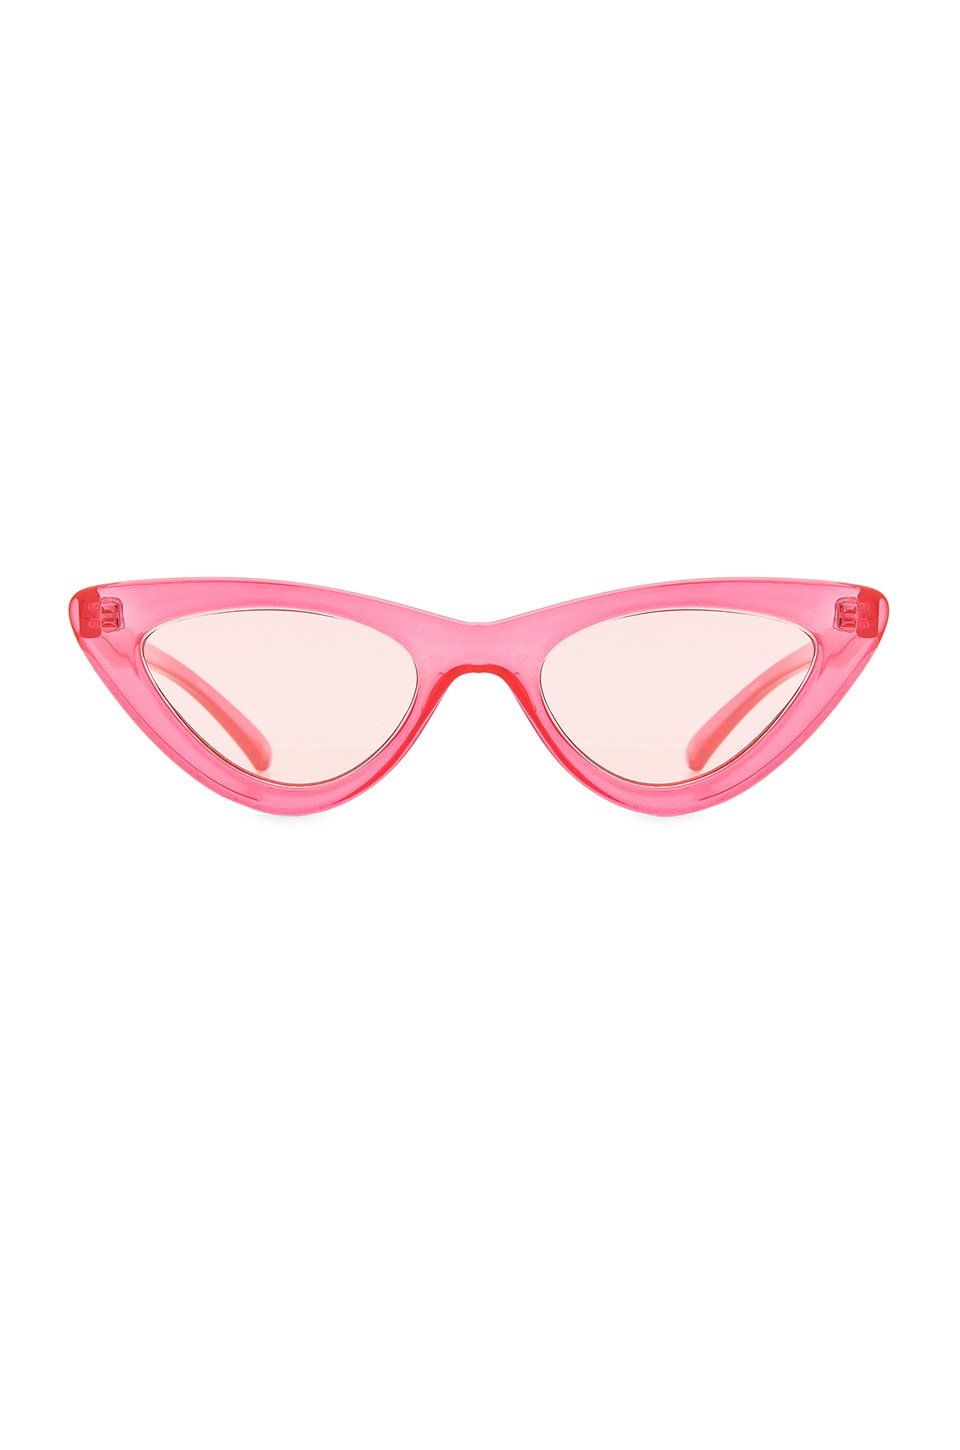 Le Specs x Adam Selman The Last Lolita in Crystal Hot Pink & Pink Mirror